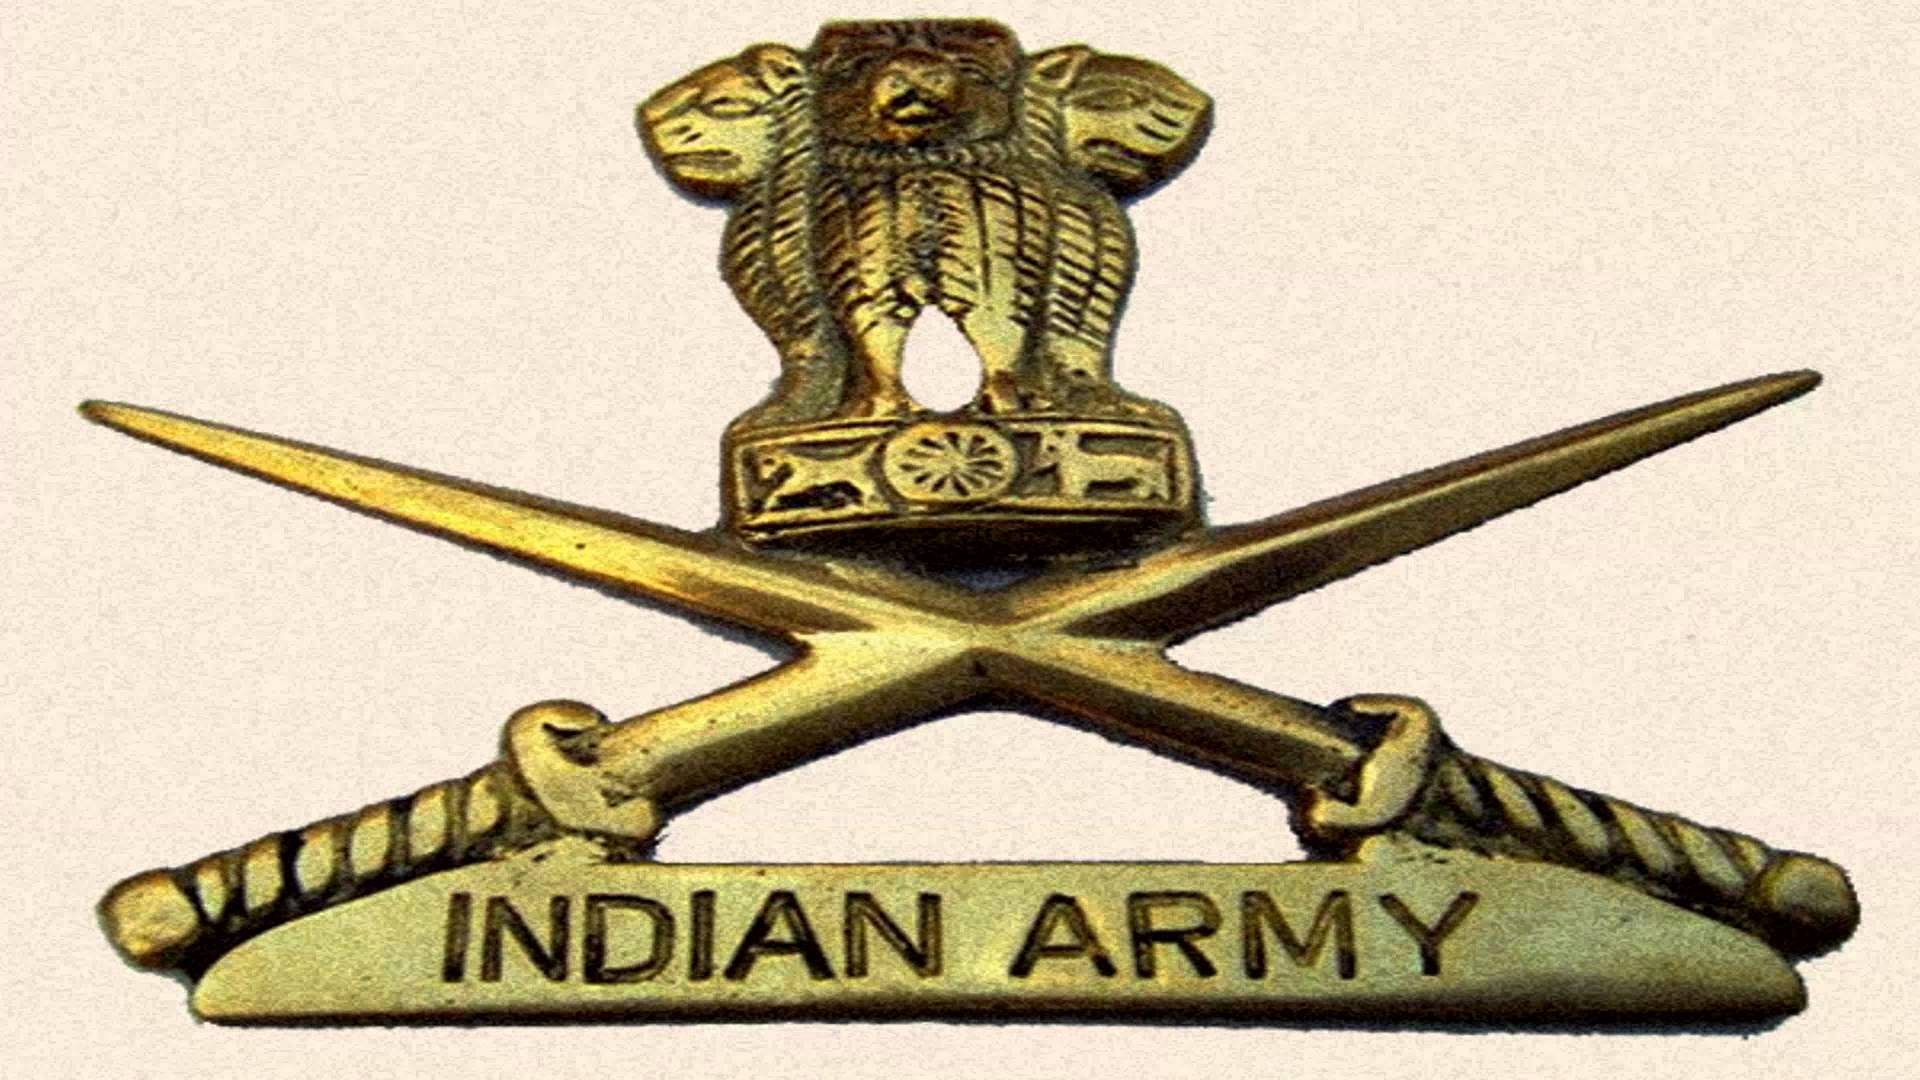 Download HD Wallpapers Of Indian Army Gallery